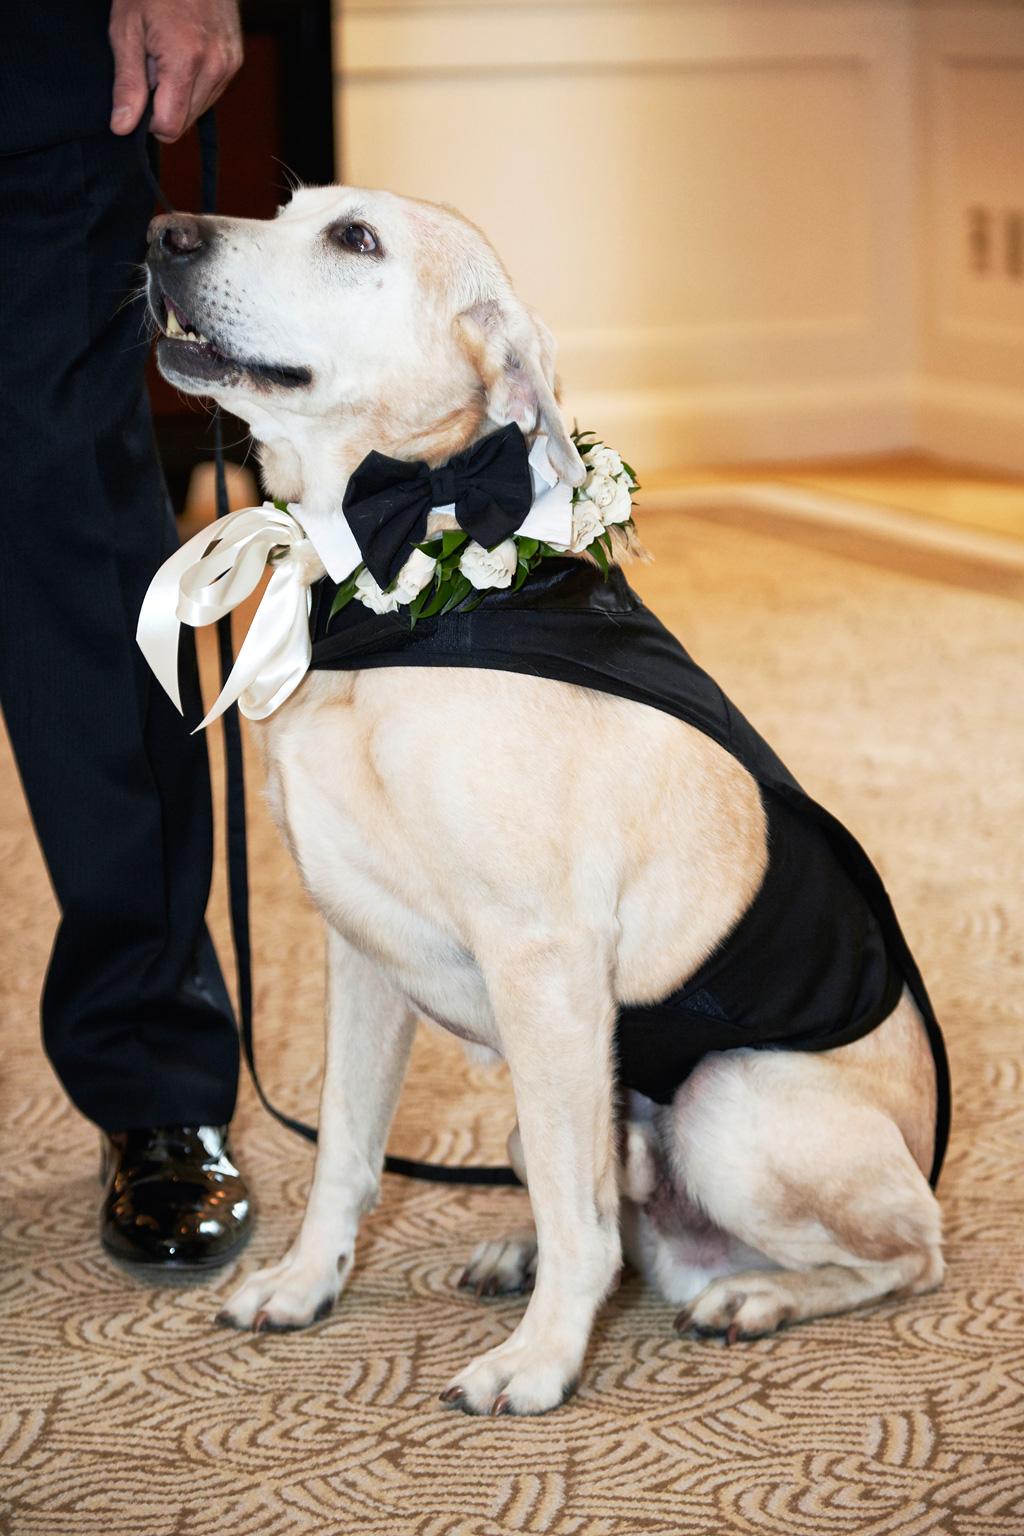 Lab dog with tuxedo outfit at wedding